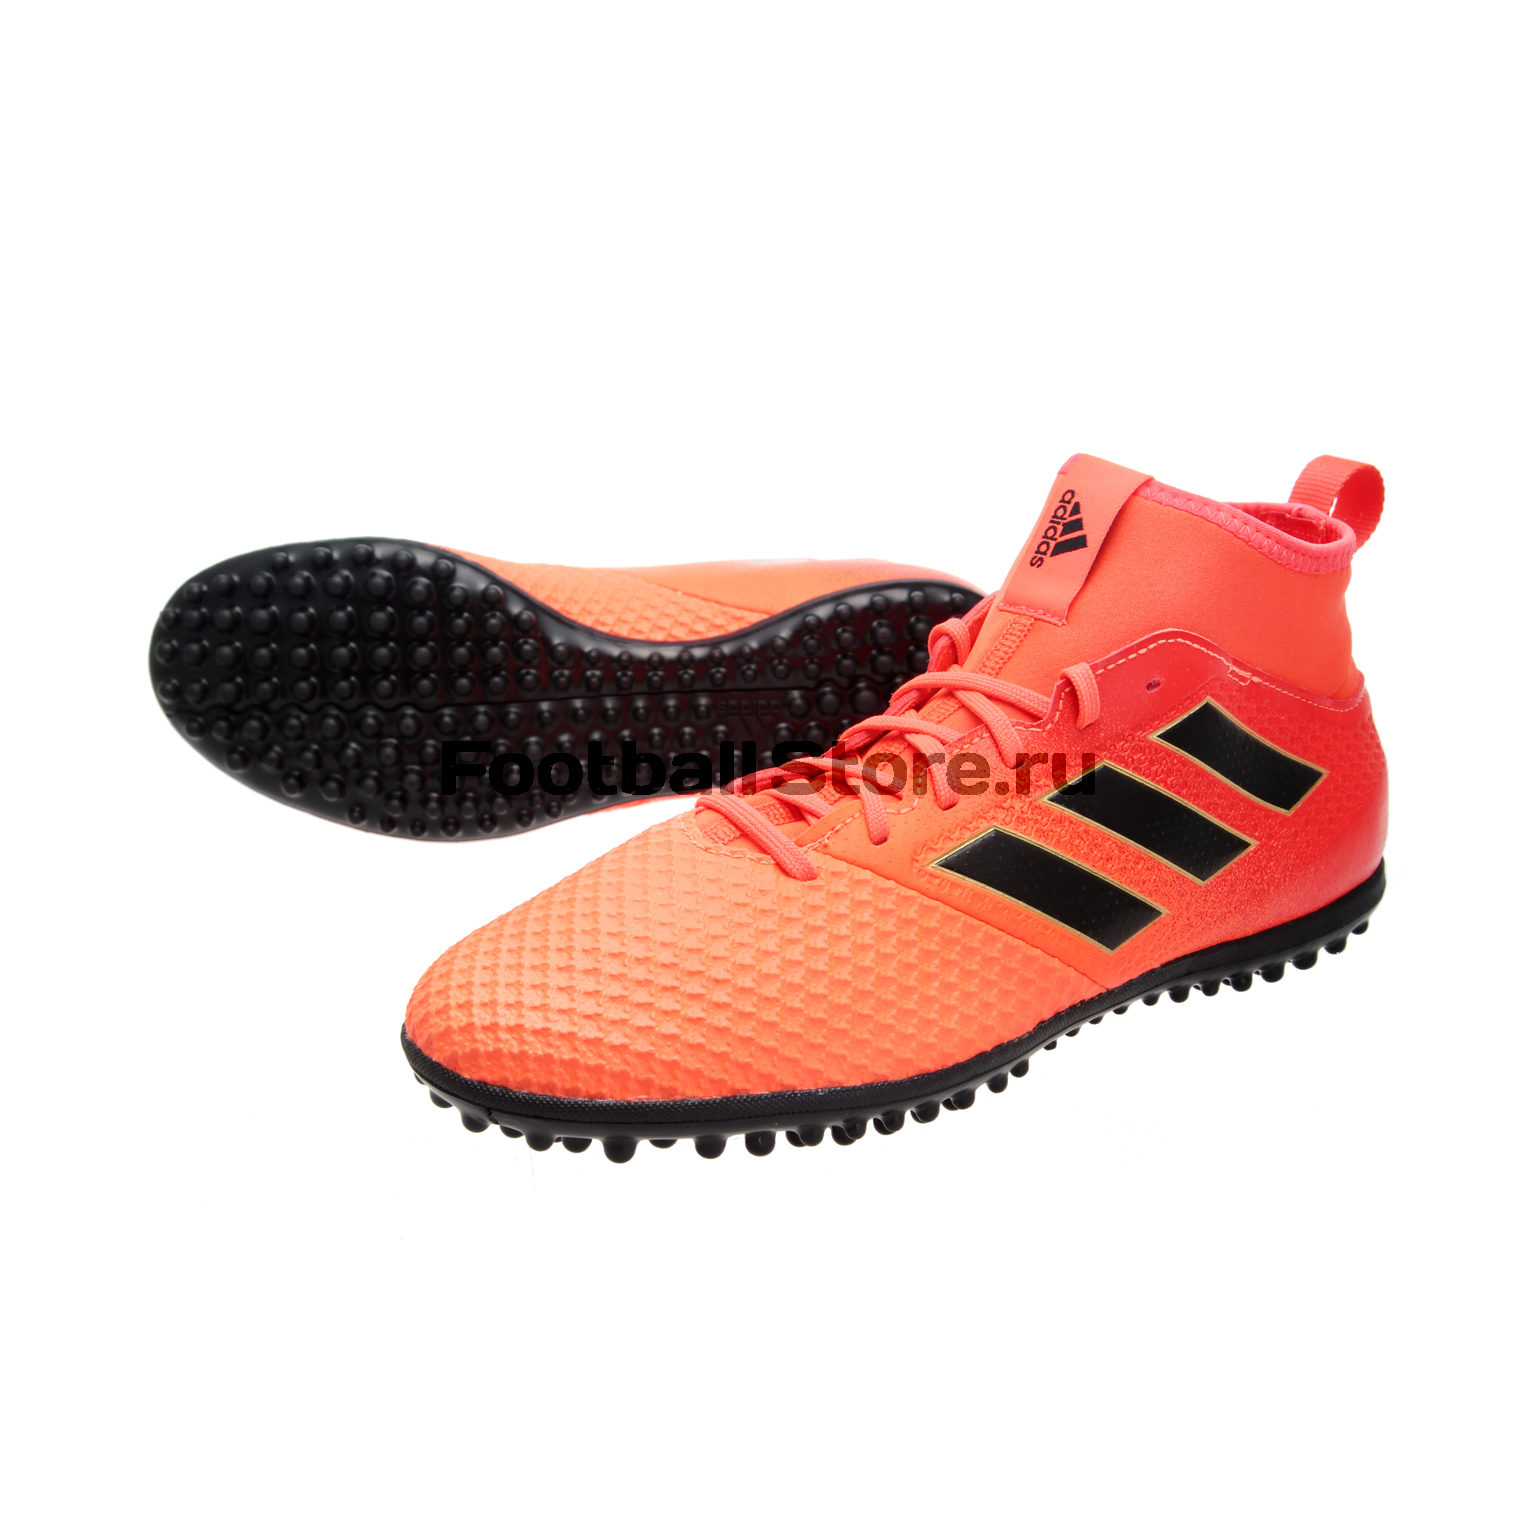 Шиповки Adidas Шиповки Adidas ACE Tango 17.3 TF BY2203 660v ui 10a ith 8 terminals rotary cam universal changeover combination switch